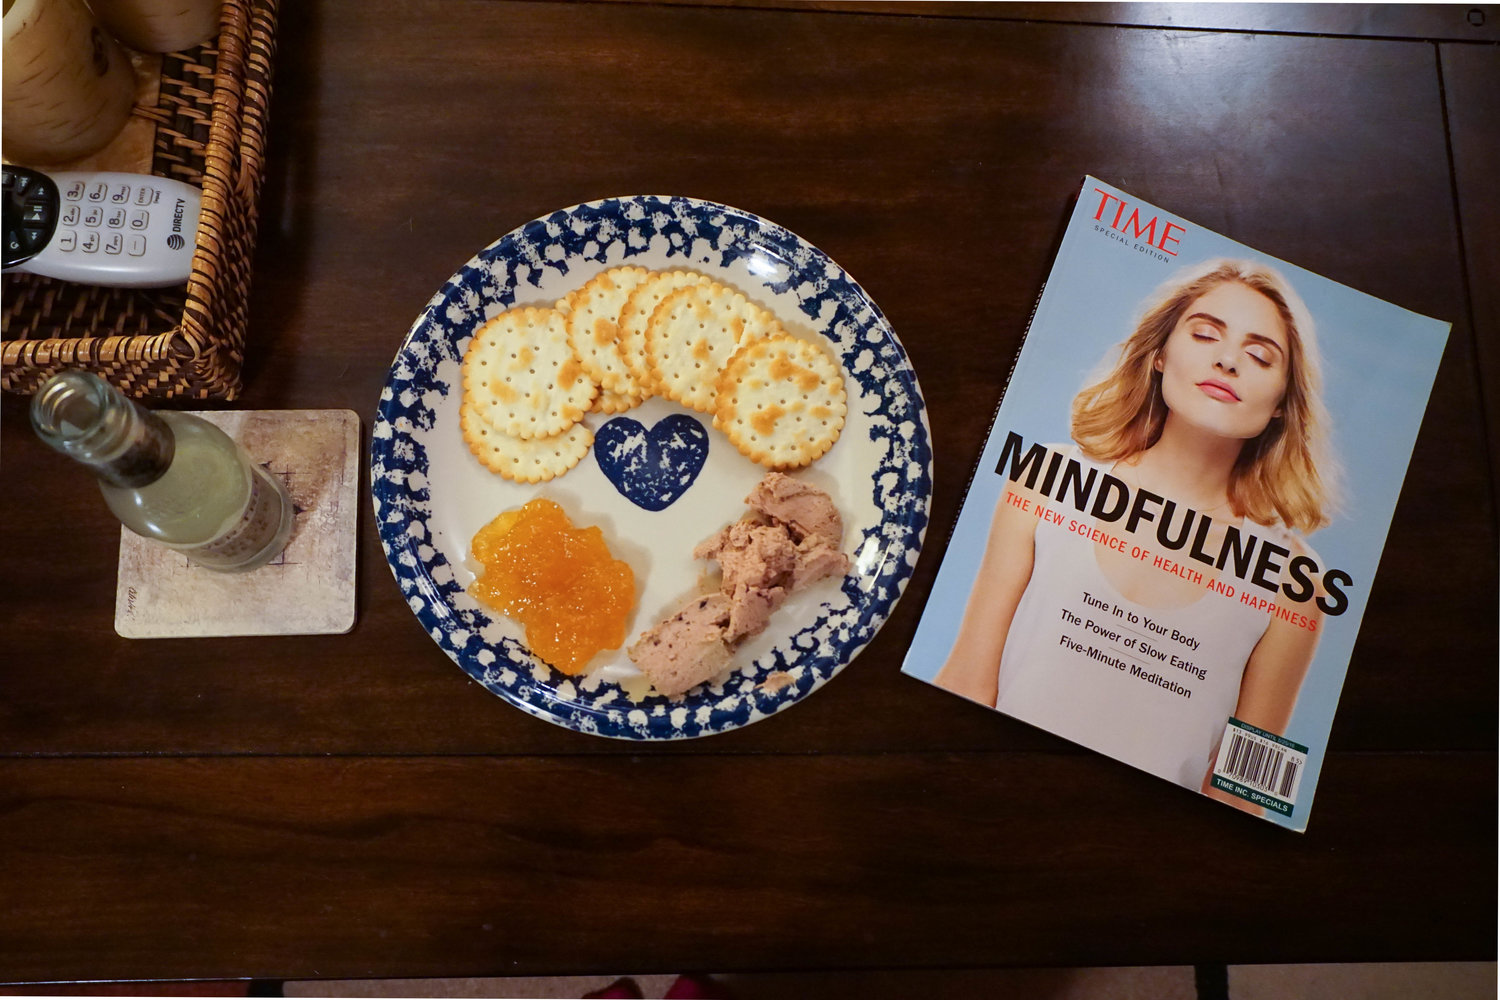 Ginger beer, Chicken liver paté, and TIME's mindfulness edition as dinner cooks…yes.